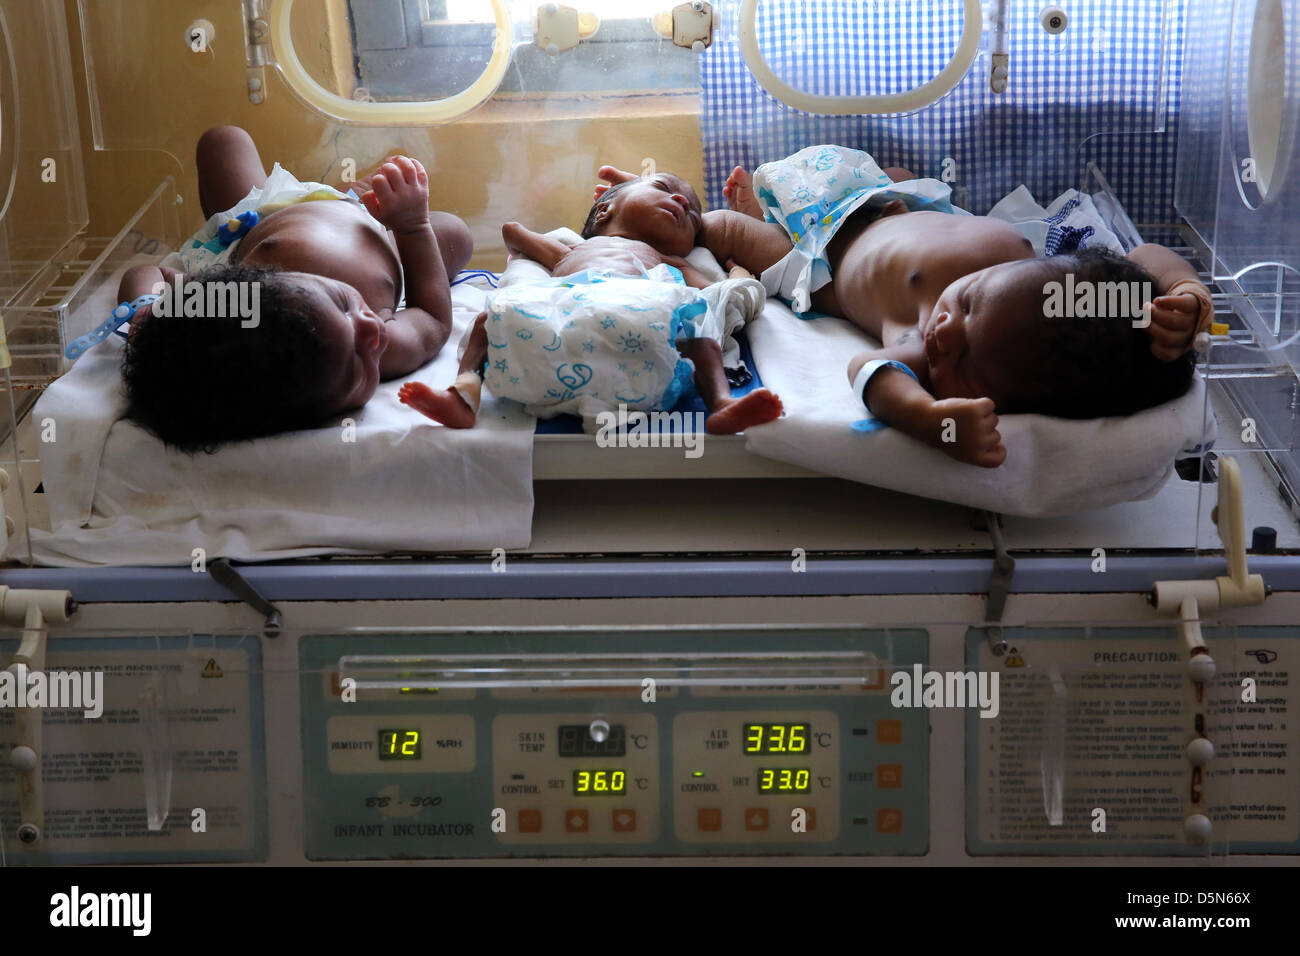 Baby cribs in ghana - Premature Baby Newborn Premature Babies In The Maternity Area Of The Holy Family Hospital In Techiman Ghana